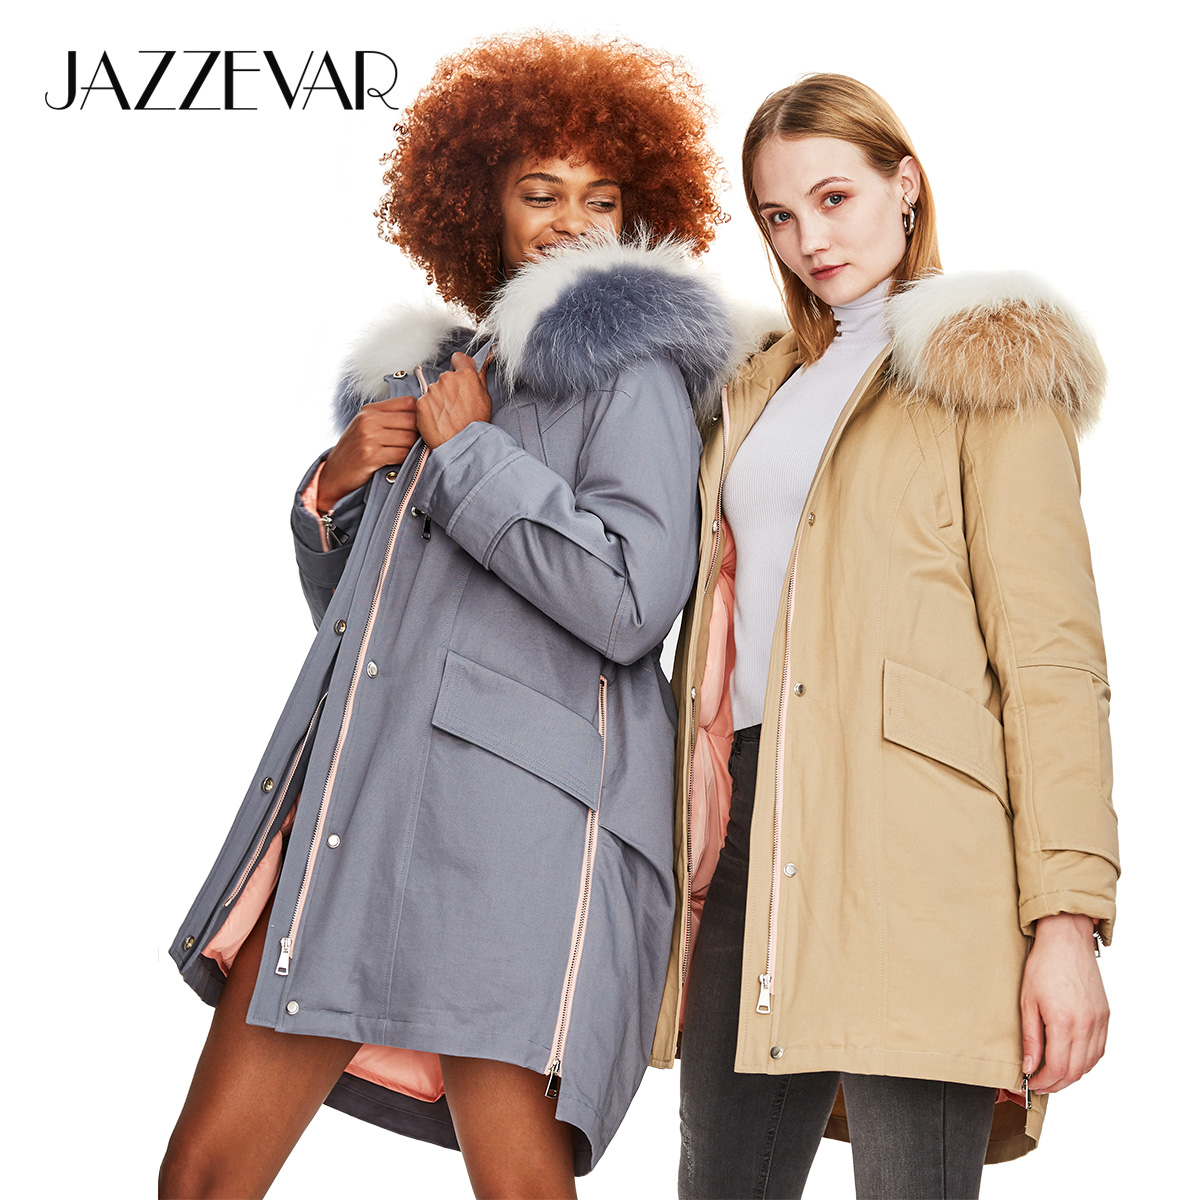 JAZZEVAR 2019 Winter New Safari Style Women's Casual Down Jacket Raccoon Fur Collar Zipper Coat Hooded Parka Top Quality Z18004